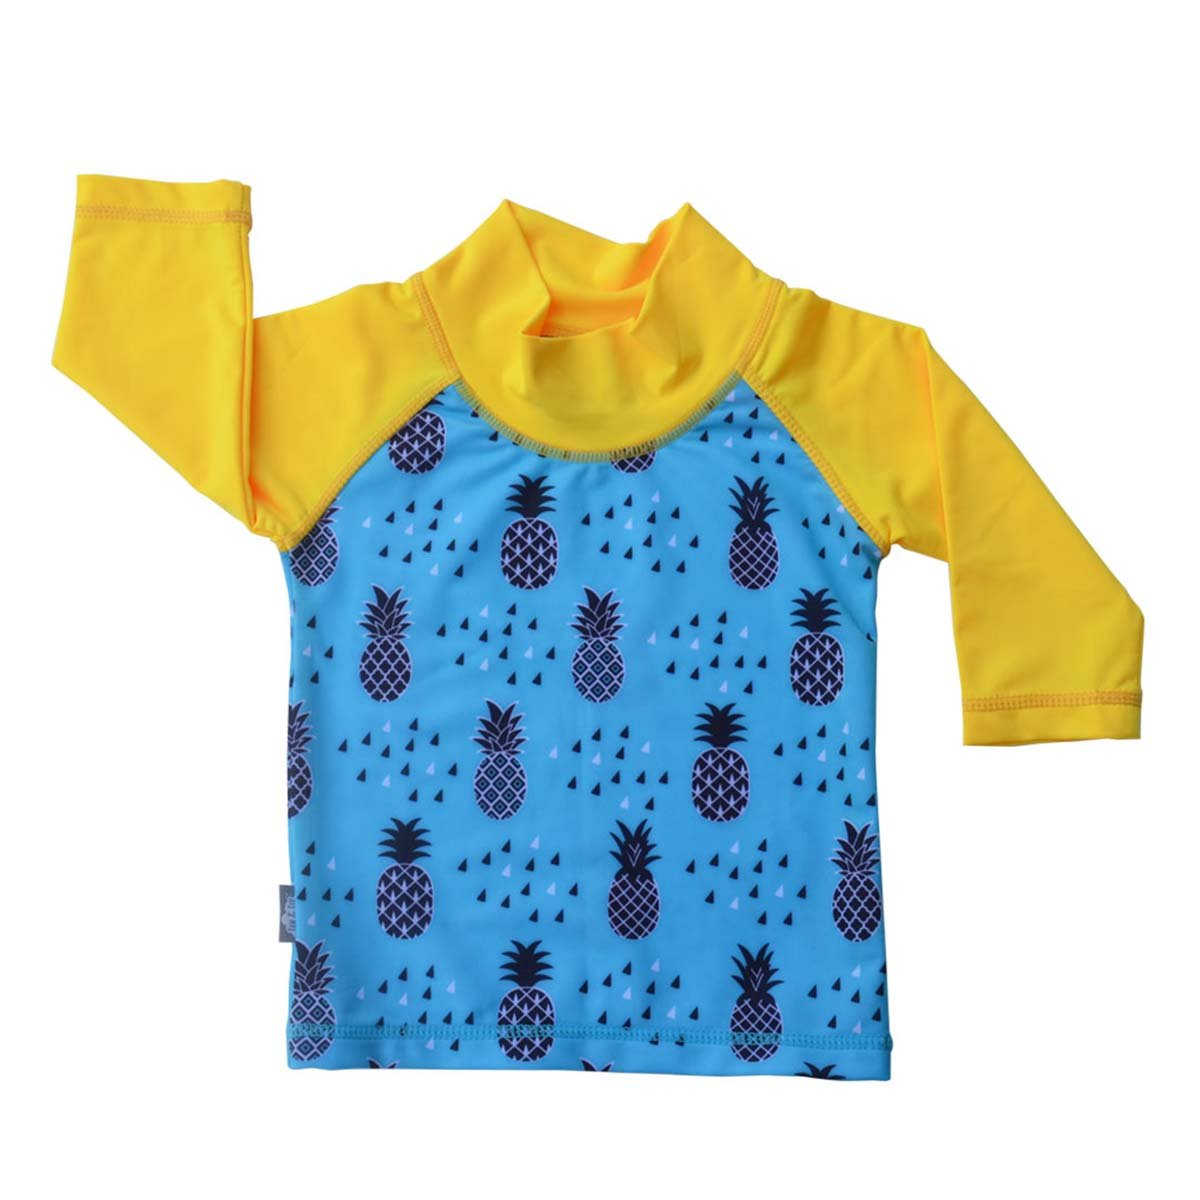 JAN & JUL UV Protective Swim Shirt Rash Guard 50+ UPF Baby Boy (UV Shirt S: 0-6m, Pineapple) Twinklebelle Design Inc 21-06S